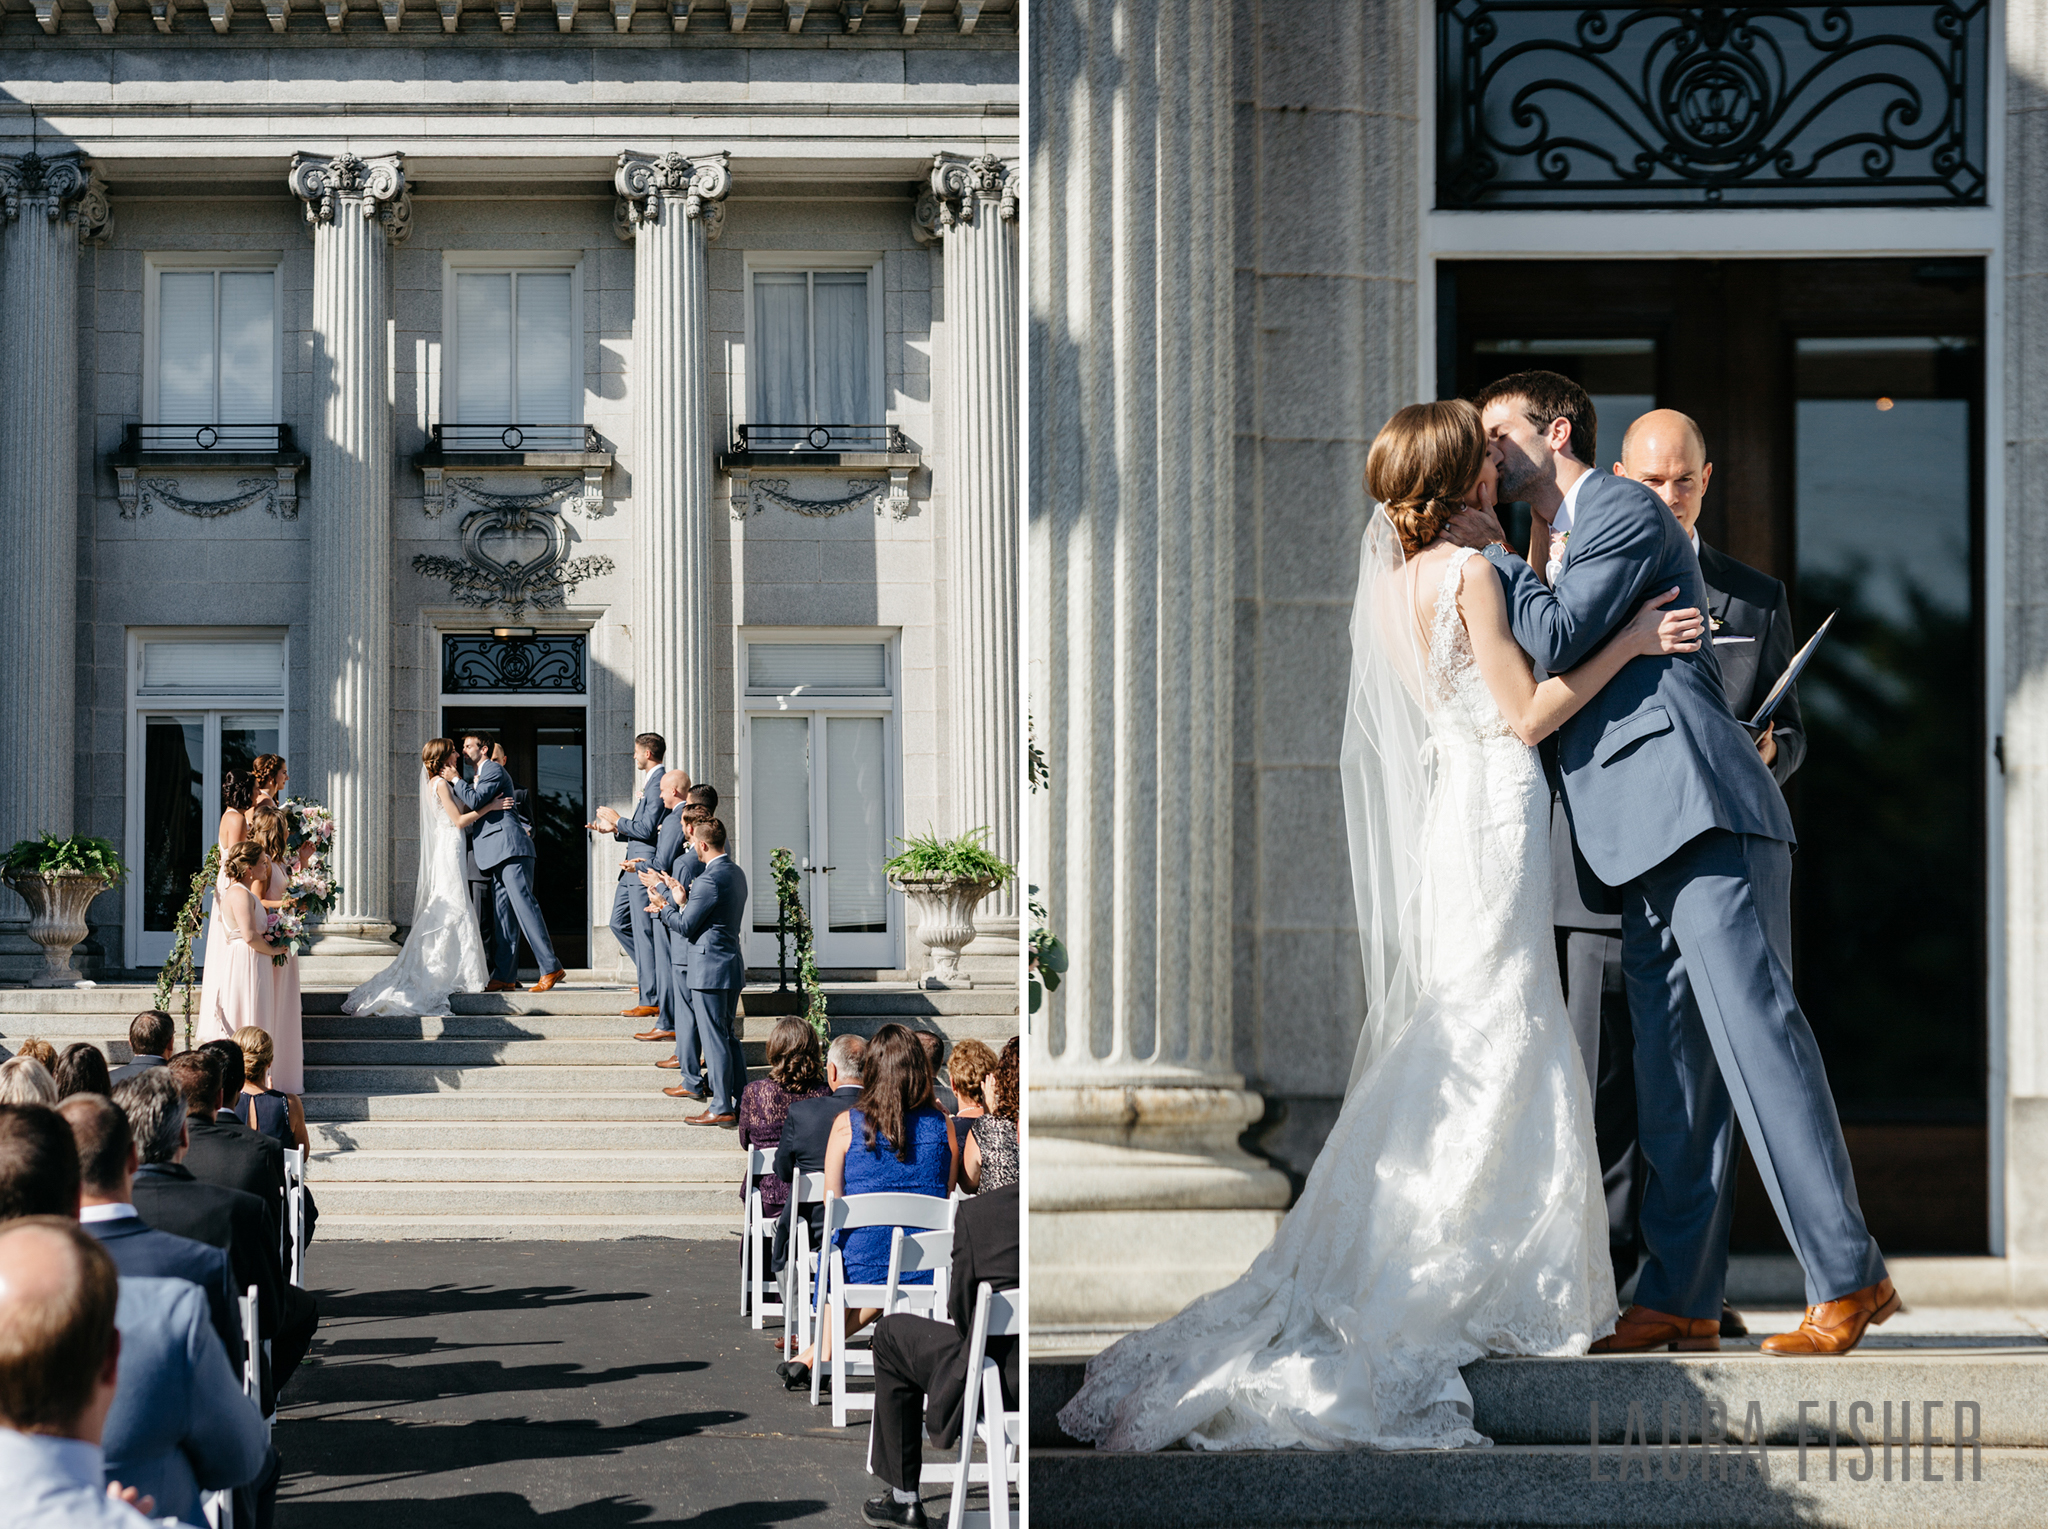 laurel-court-mansion-wedding-cincinnati-0109.jpg